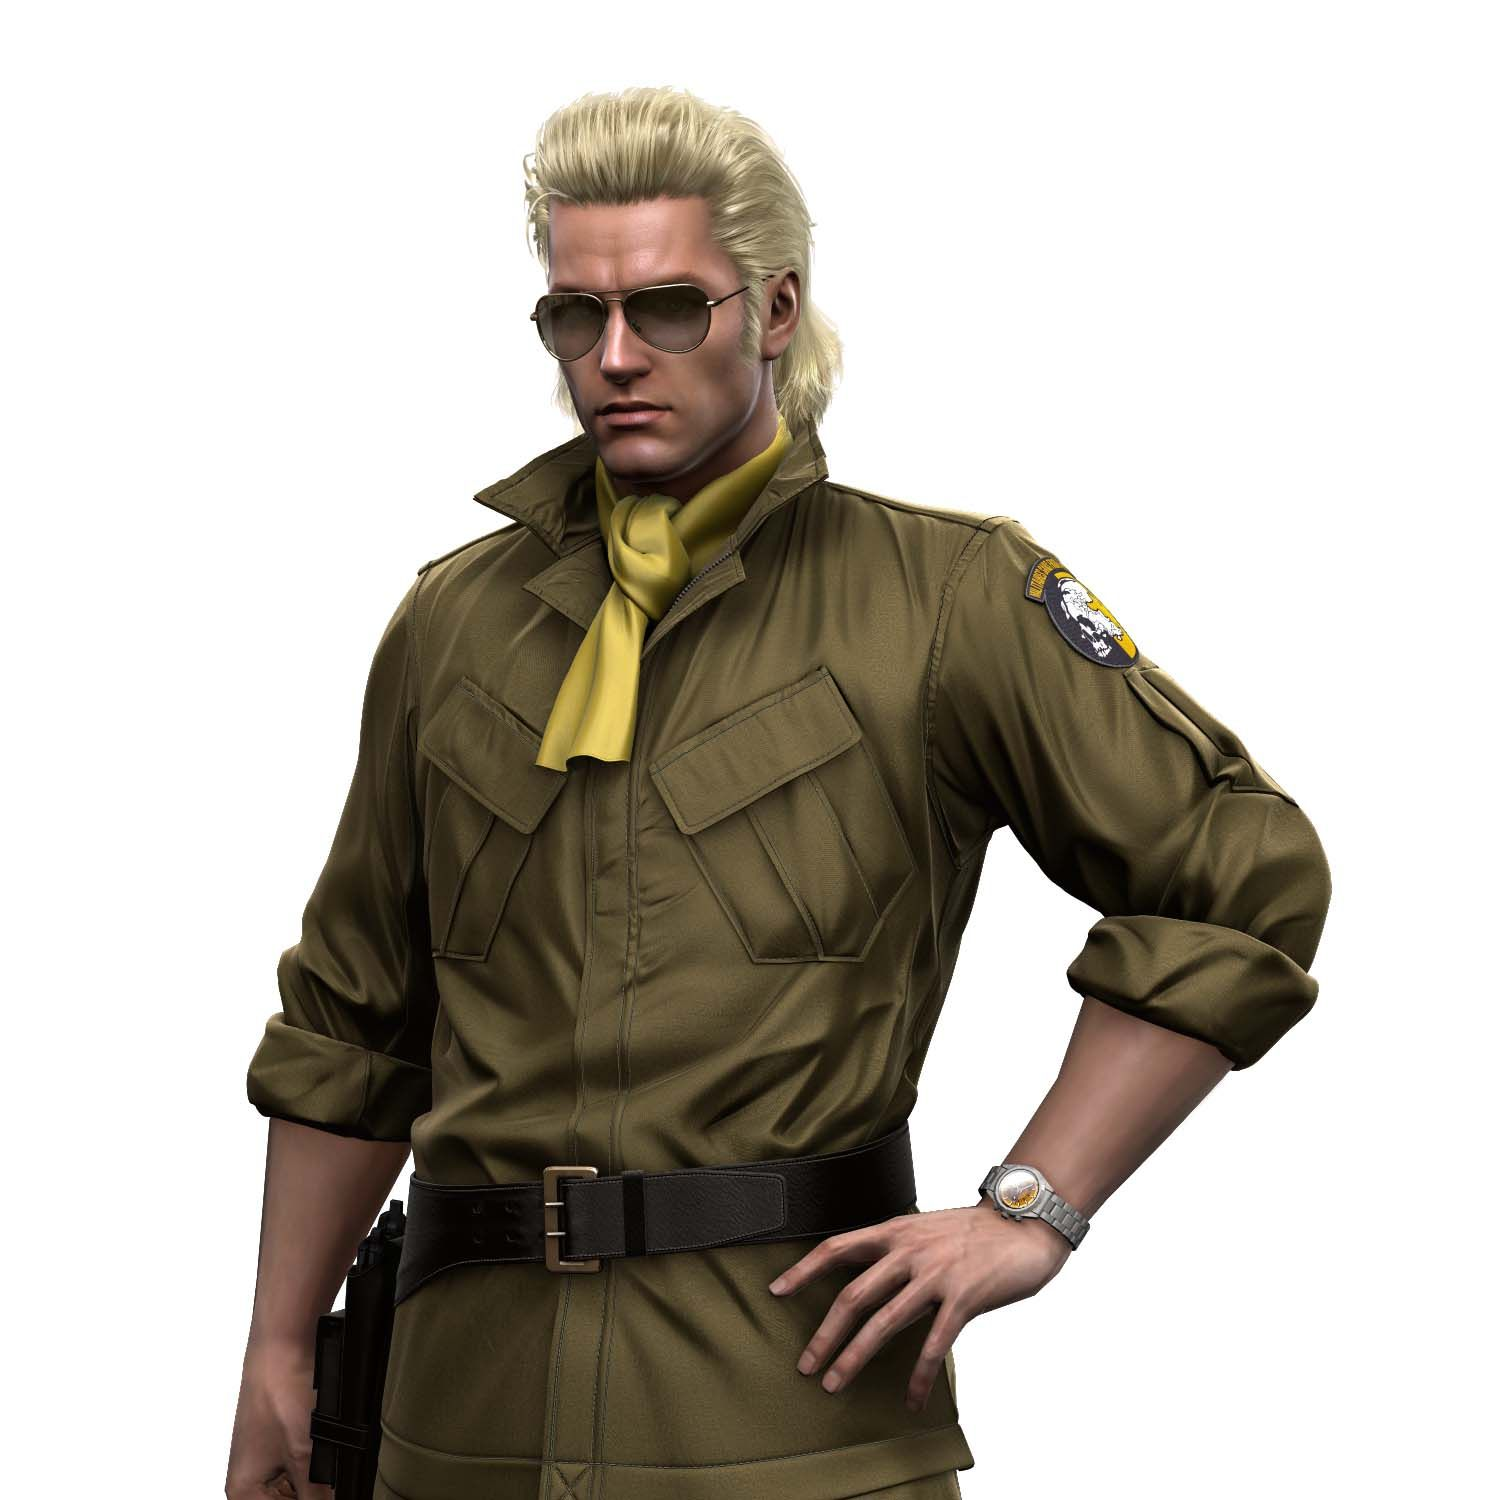 Pin On Metal Gear Solid Just playing with kazuhira miller date, mostly with the purpose of failing it. pin on metal gear solid